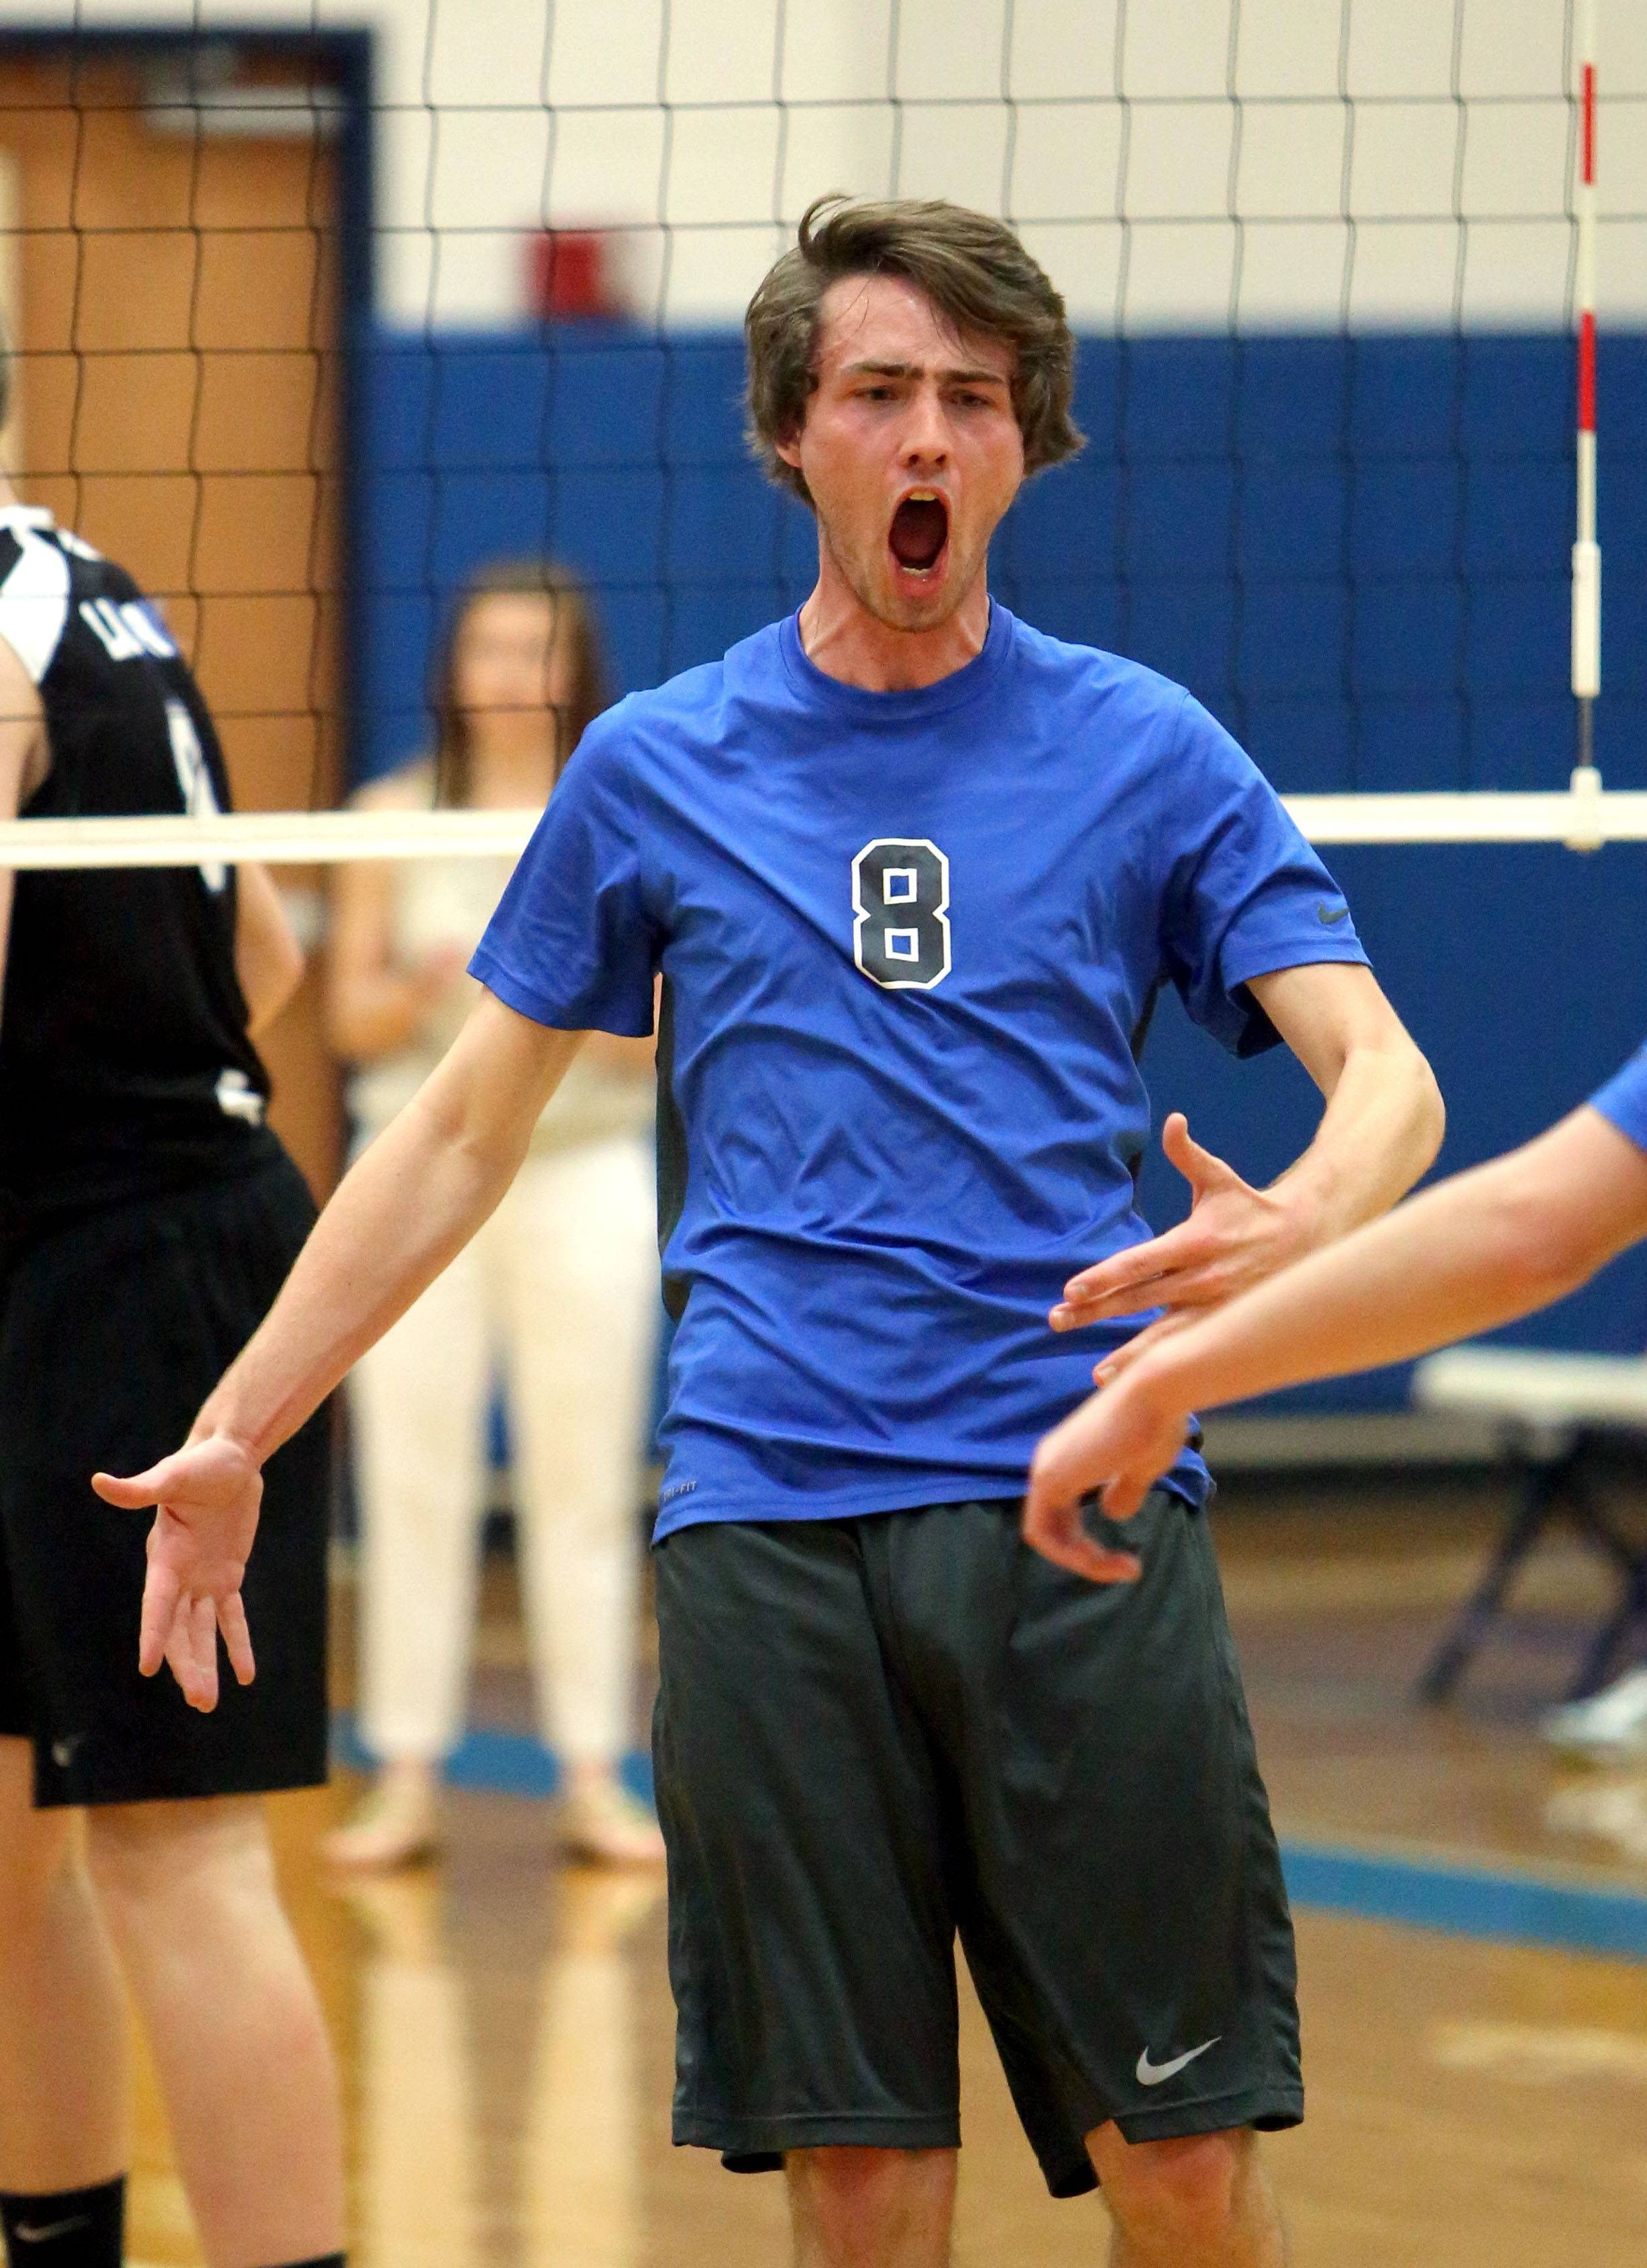 Vernon Hills' Ryan Opitz celebrates after a point during the Cougars' win over Lake Zurich on Wednesday at Vernon Hills.